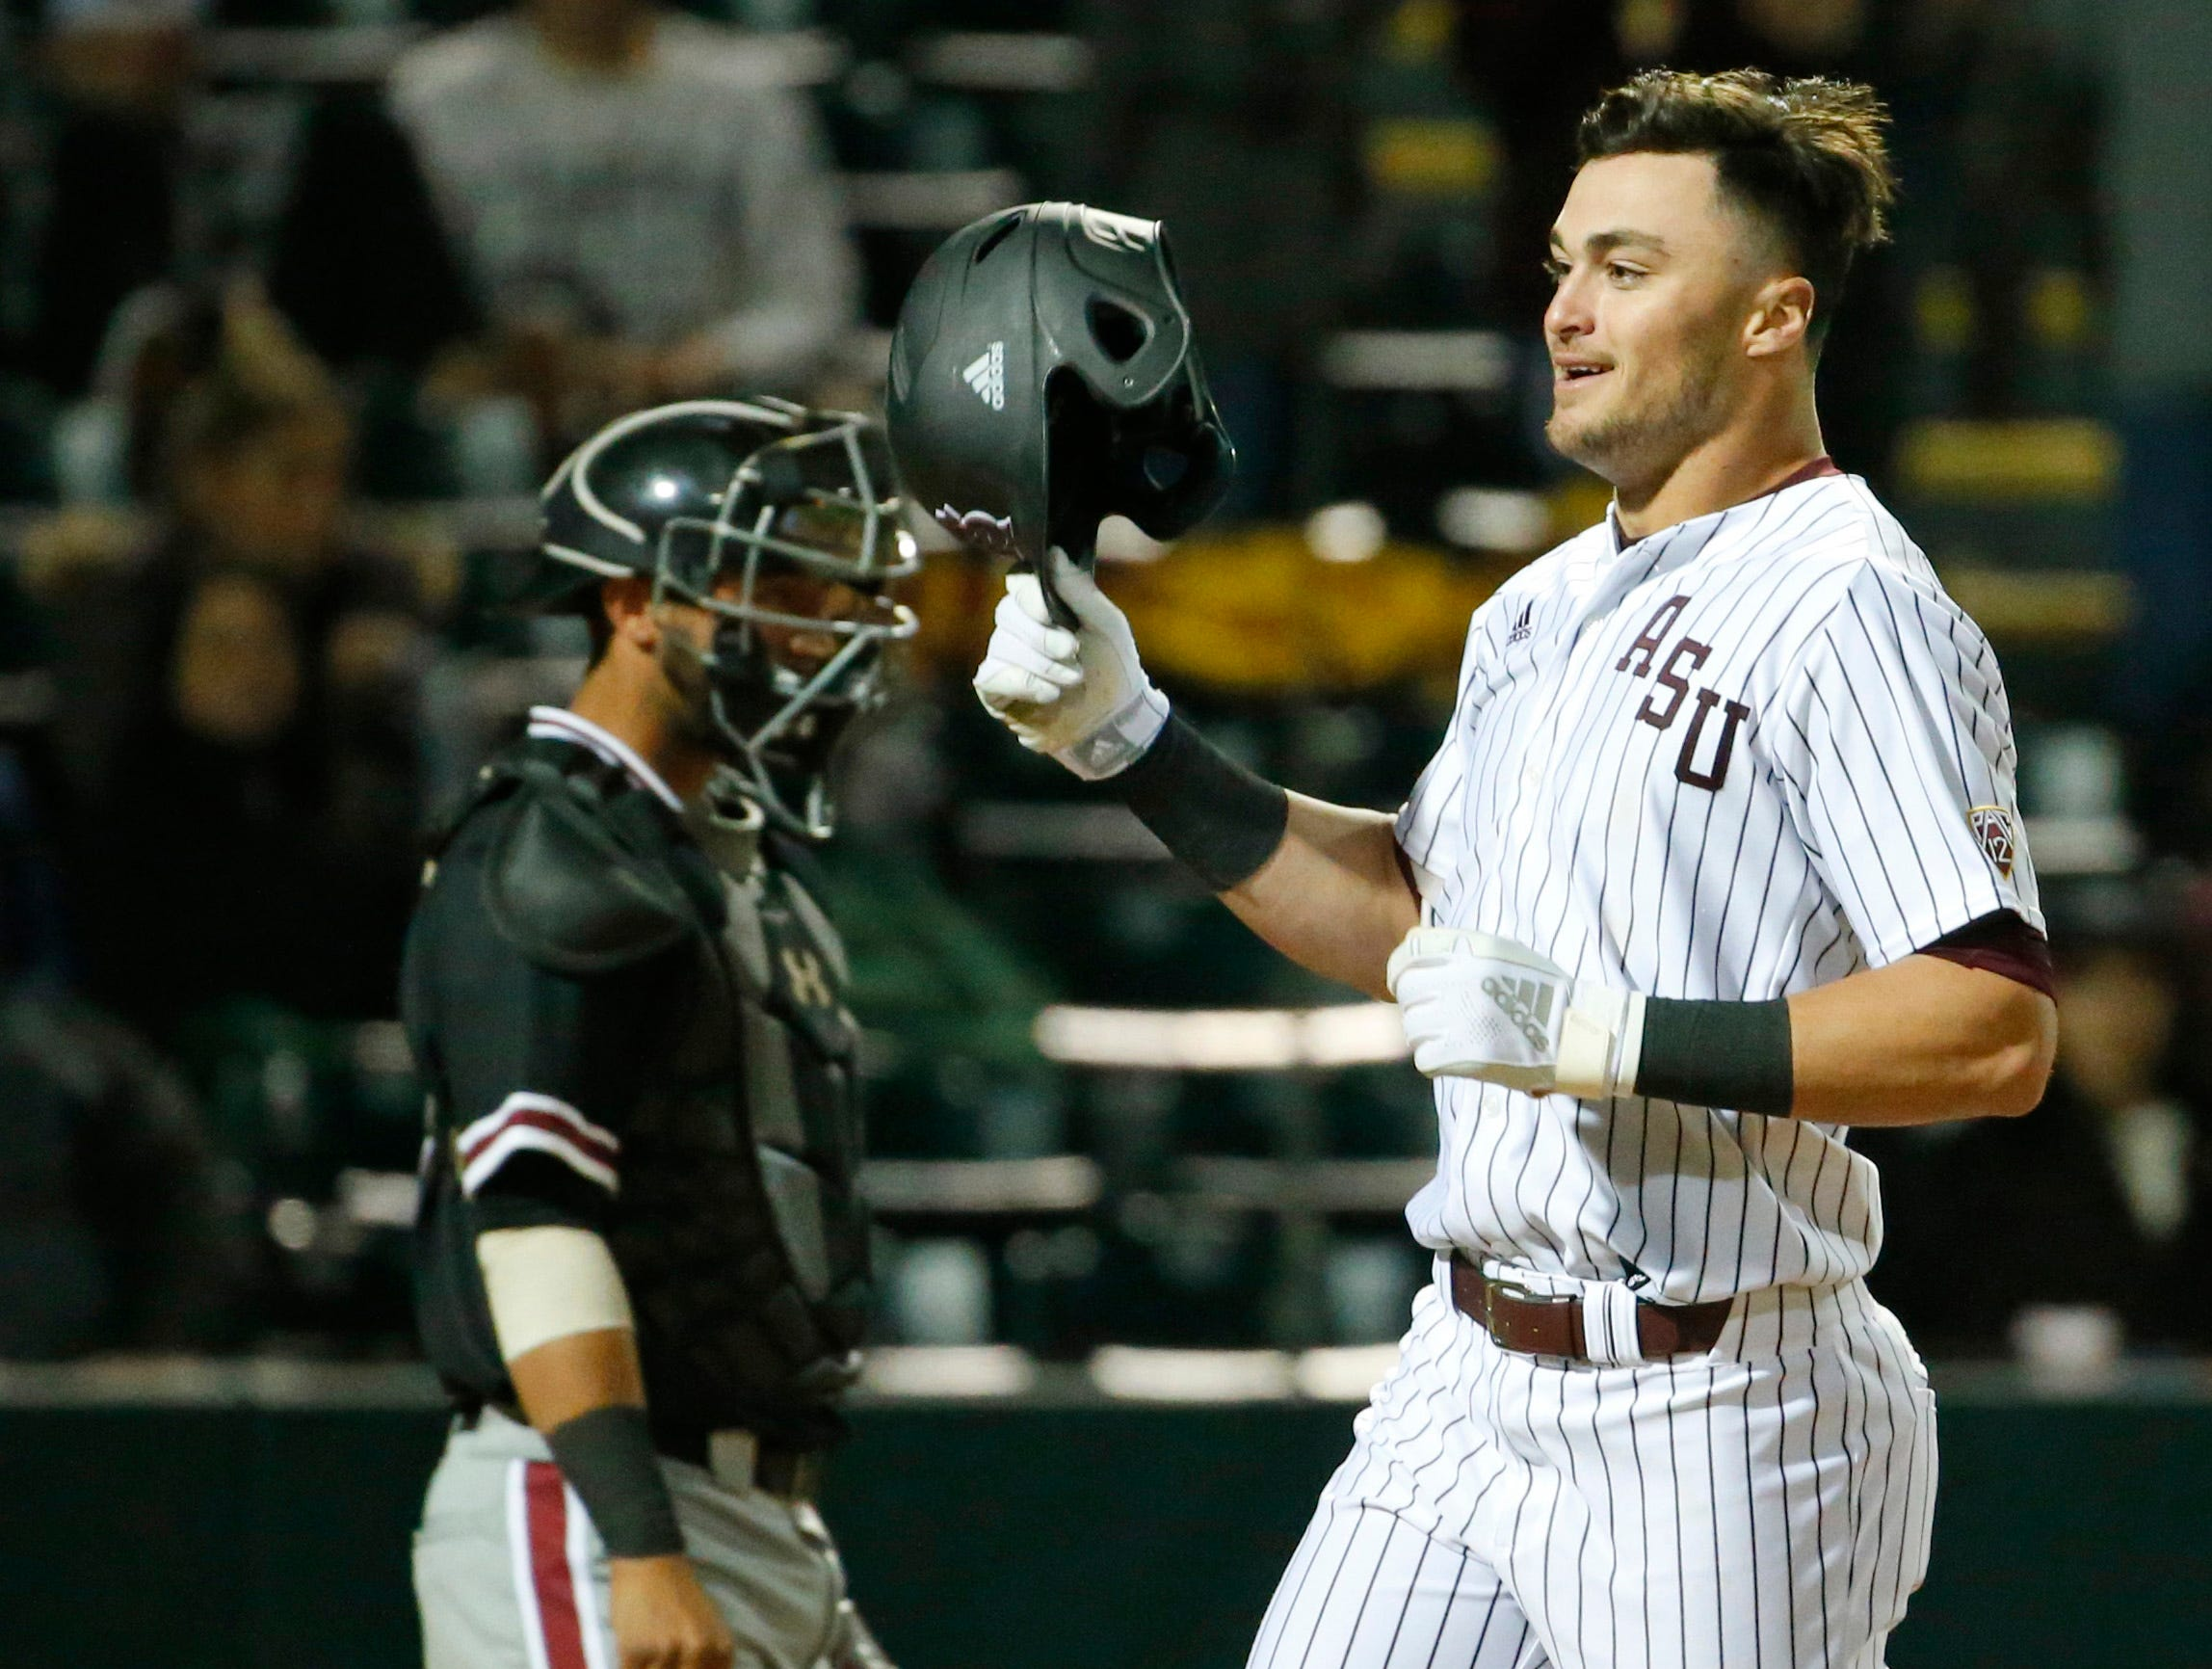 ASU Hunter Bishop (4) celebrates after hitting a home run during a baseball game against New Mexico at Phoenix Municipal Stadium on March 13, 2019.